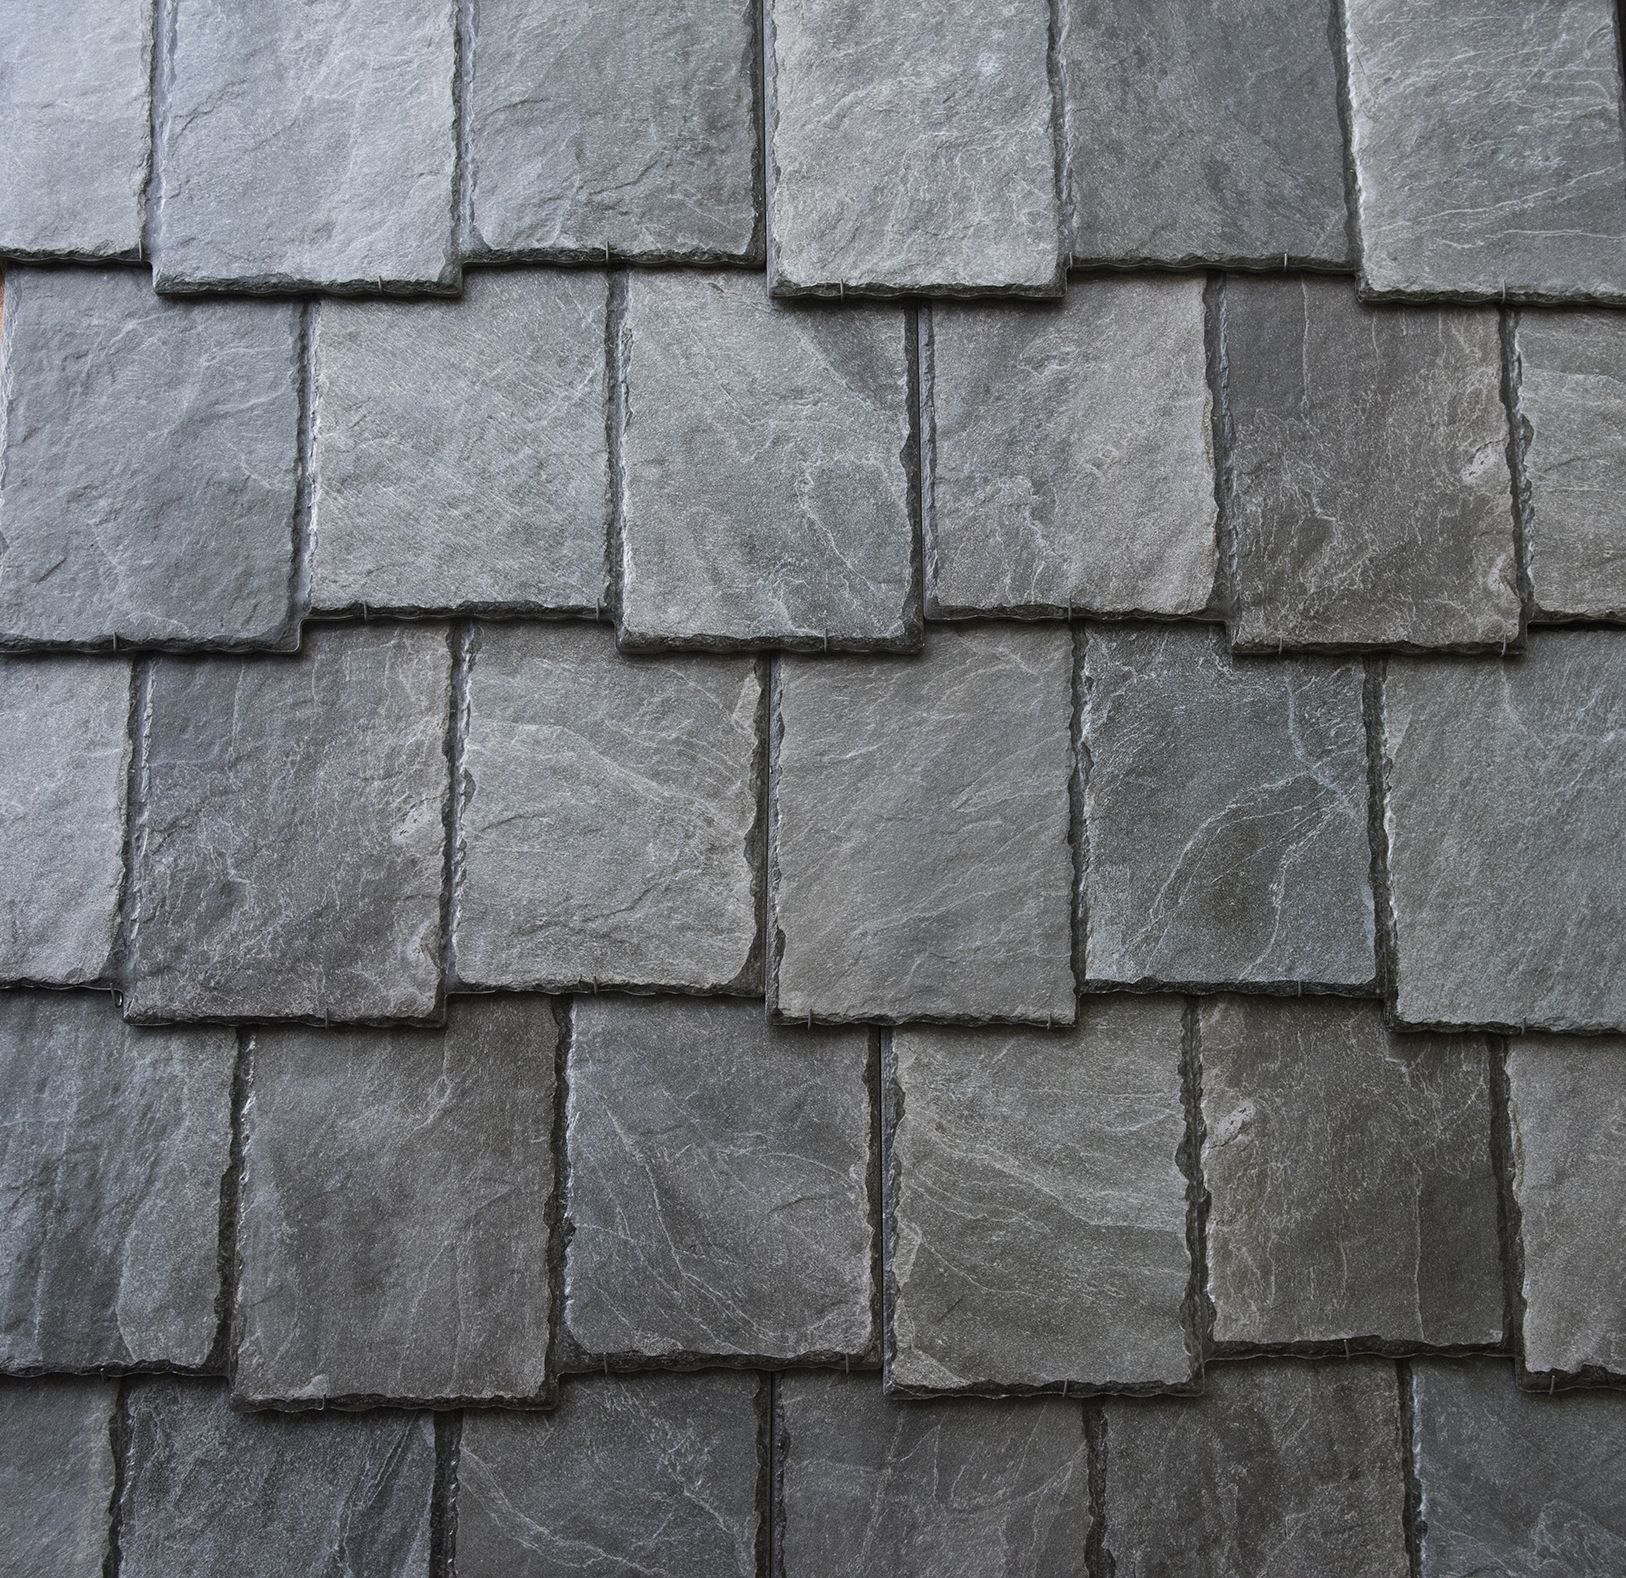 Silver Mist Tile Roofing Made To Look Like Slate In 2019